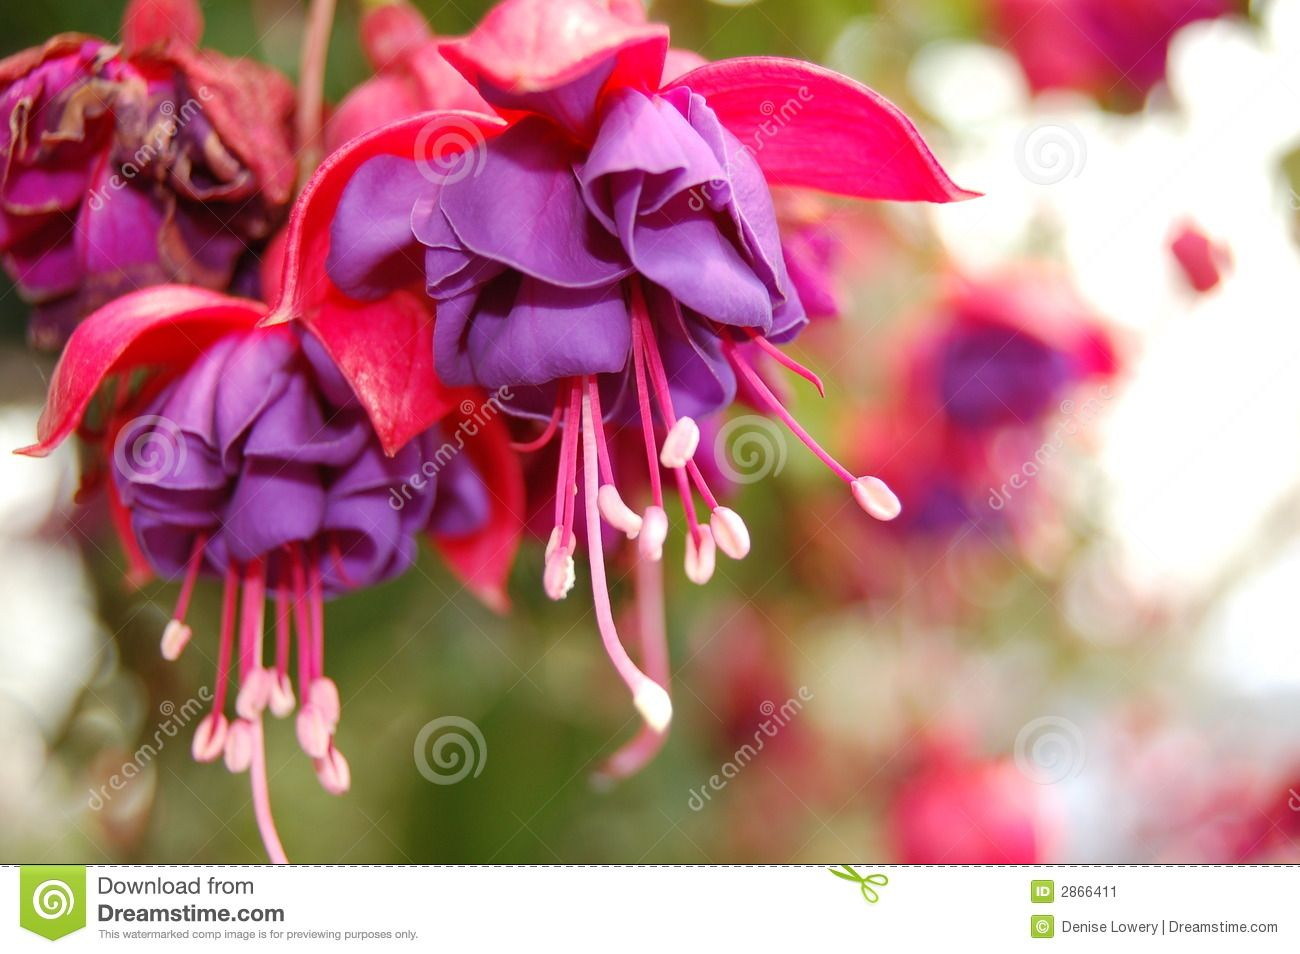 Bleeding Hearts Bleeding Heart Flower Bleeding Heart Flower Heart